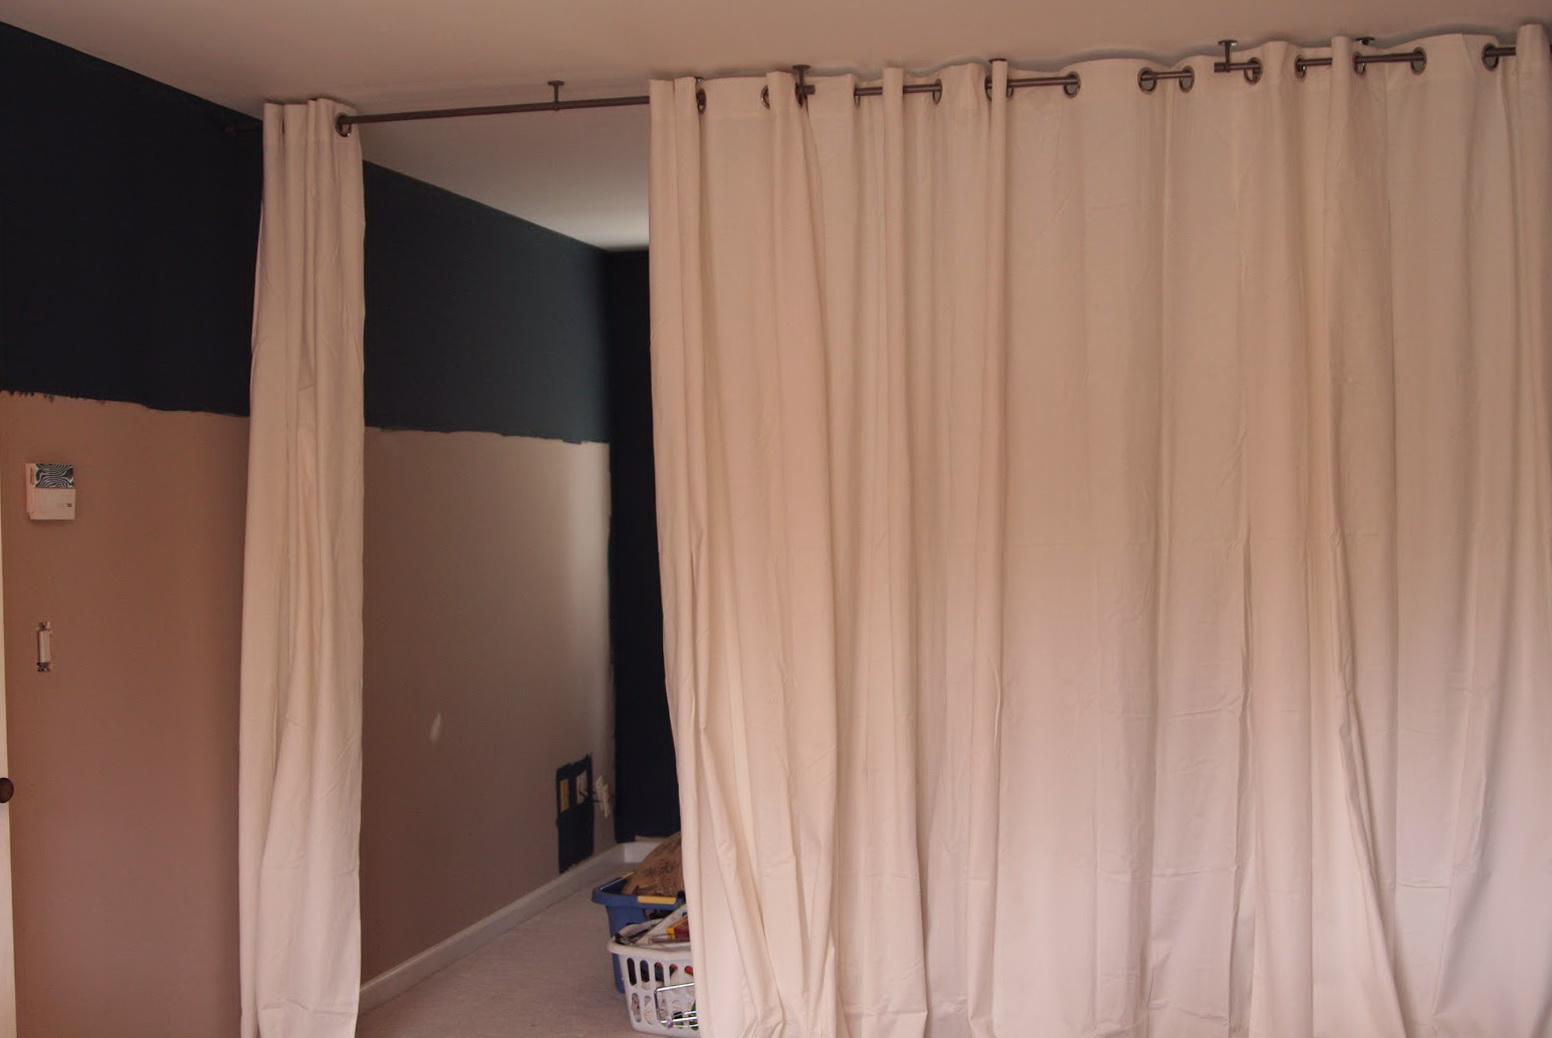 Hanging Curtains From Ceiling To Separate A Room  Home